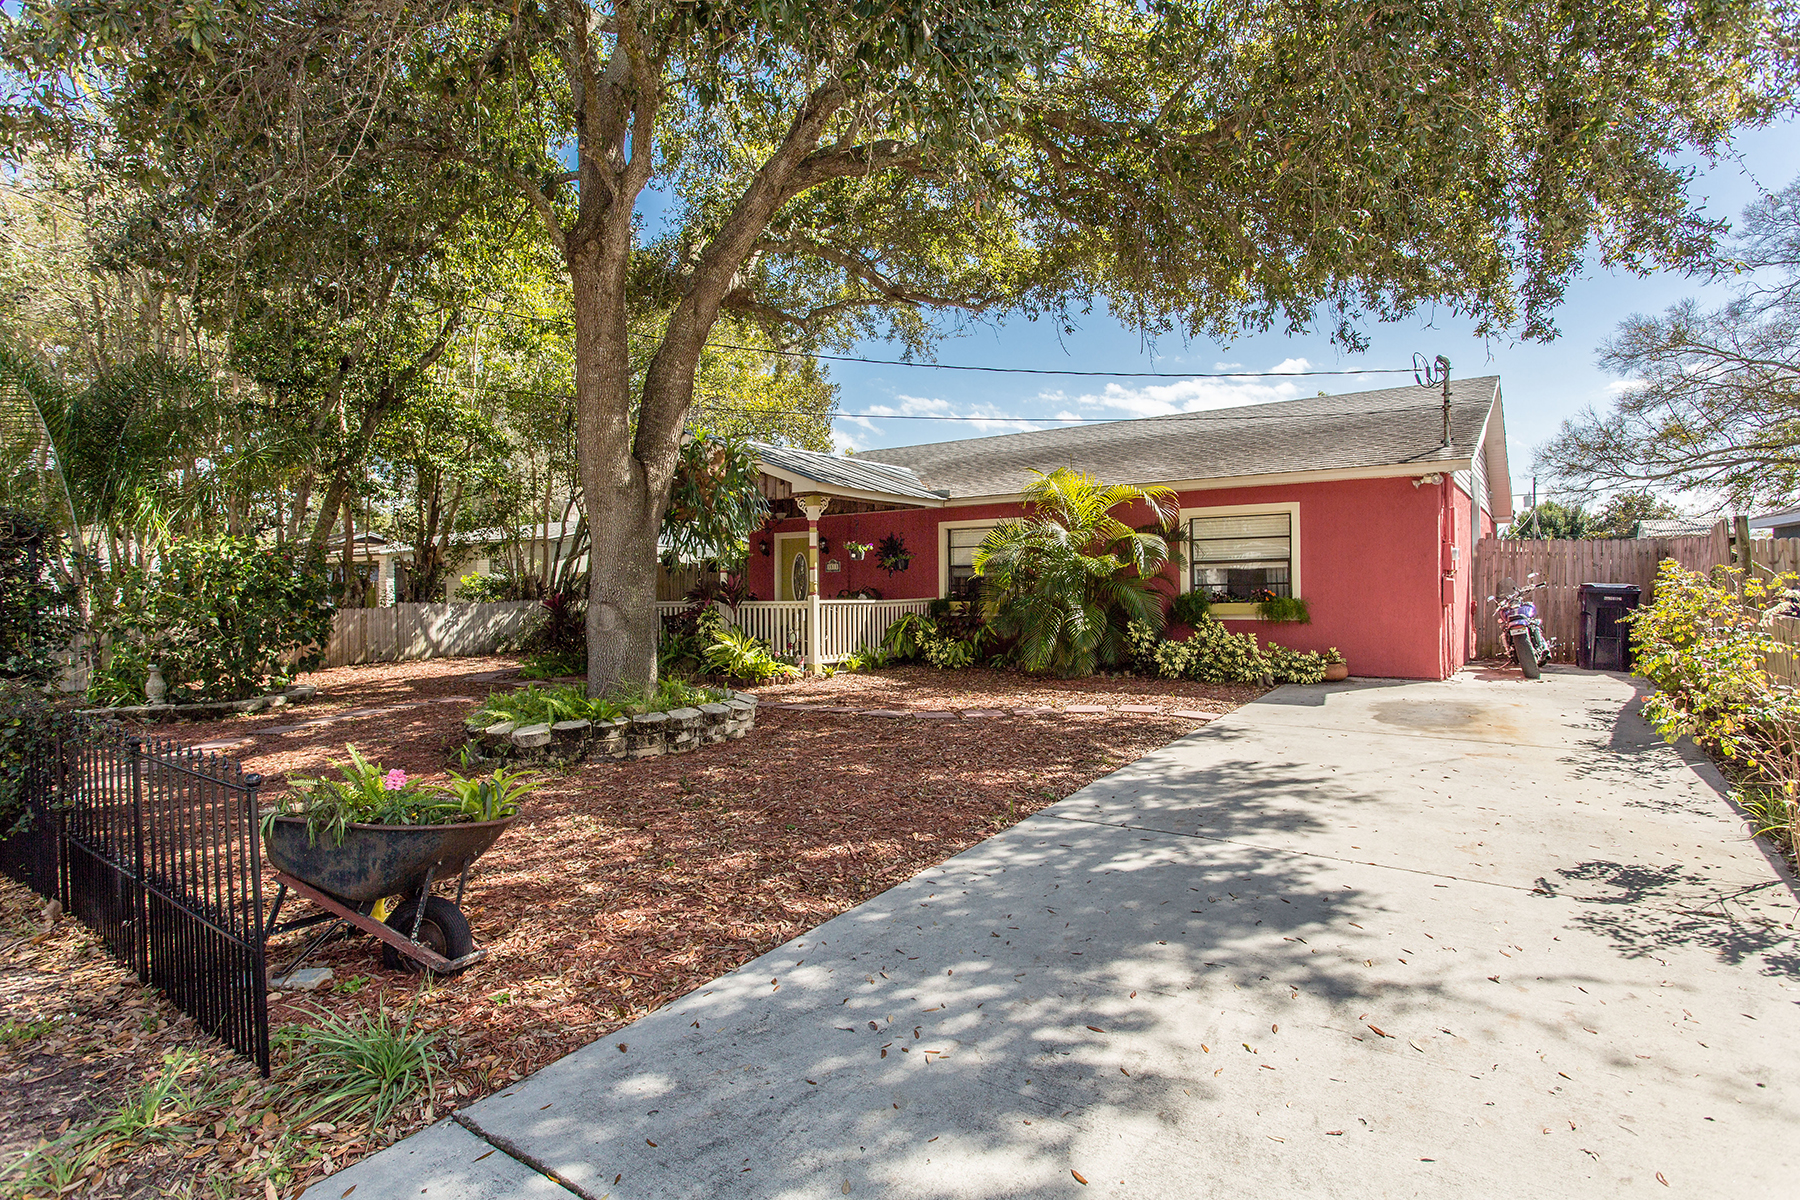 Single Family Home for Sale at TAMPA 3518 W Rogers Ave Tampa, Florida, 33611 United States